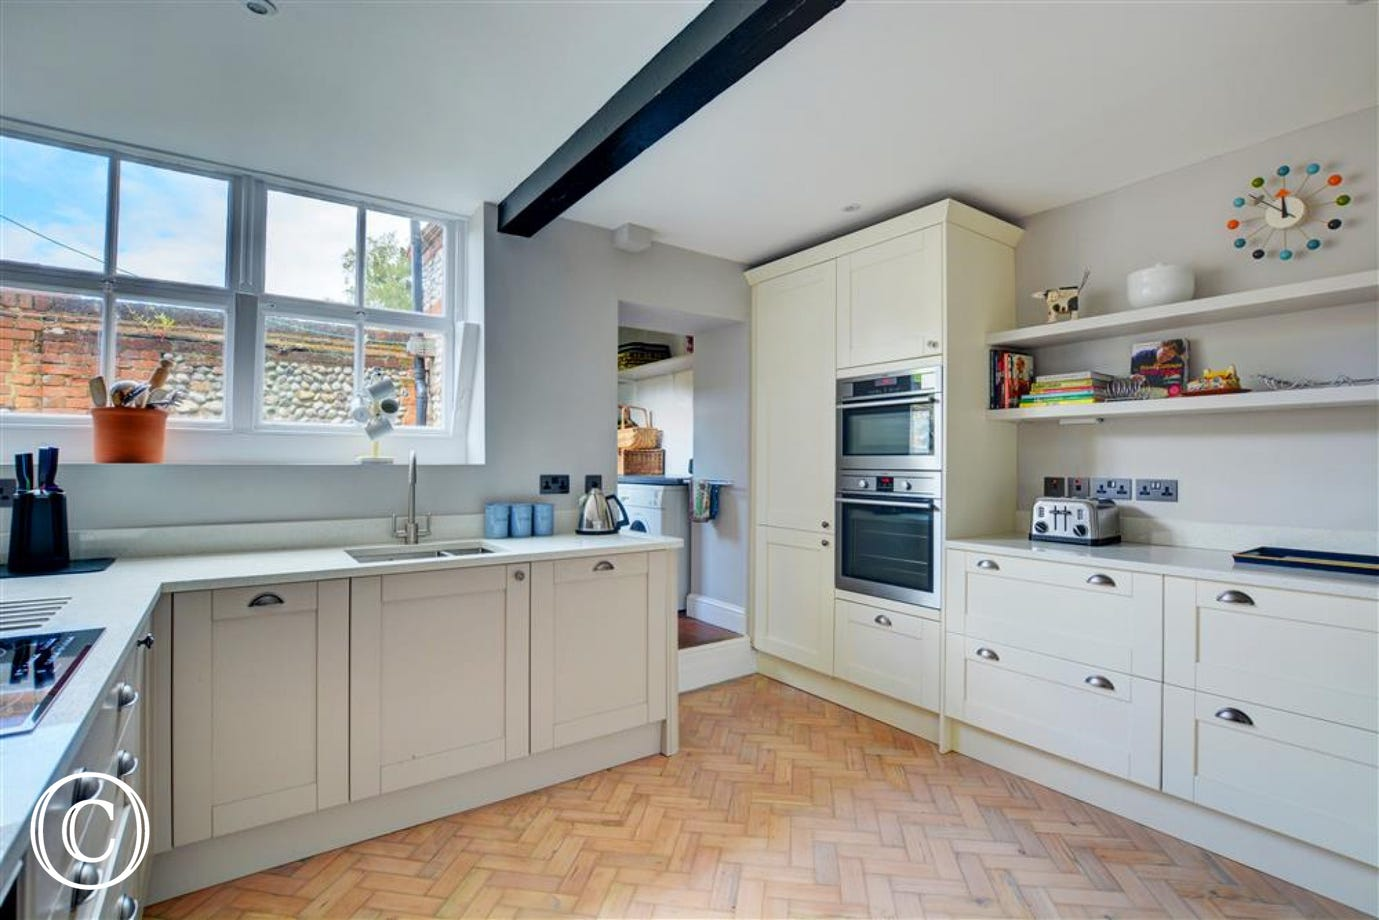 Spacious kitchen with ample cupboard space